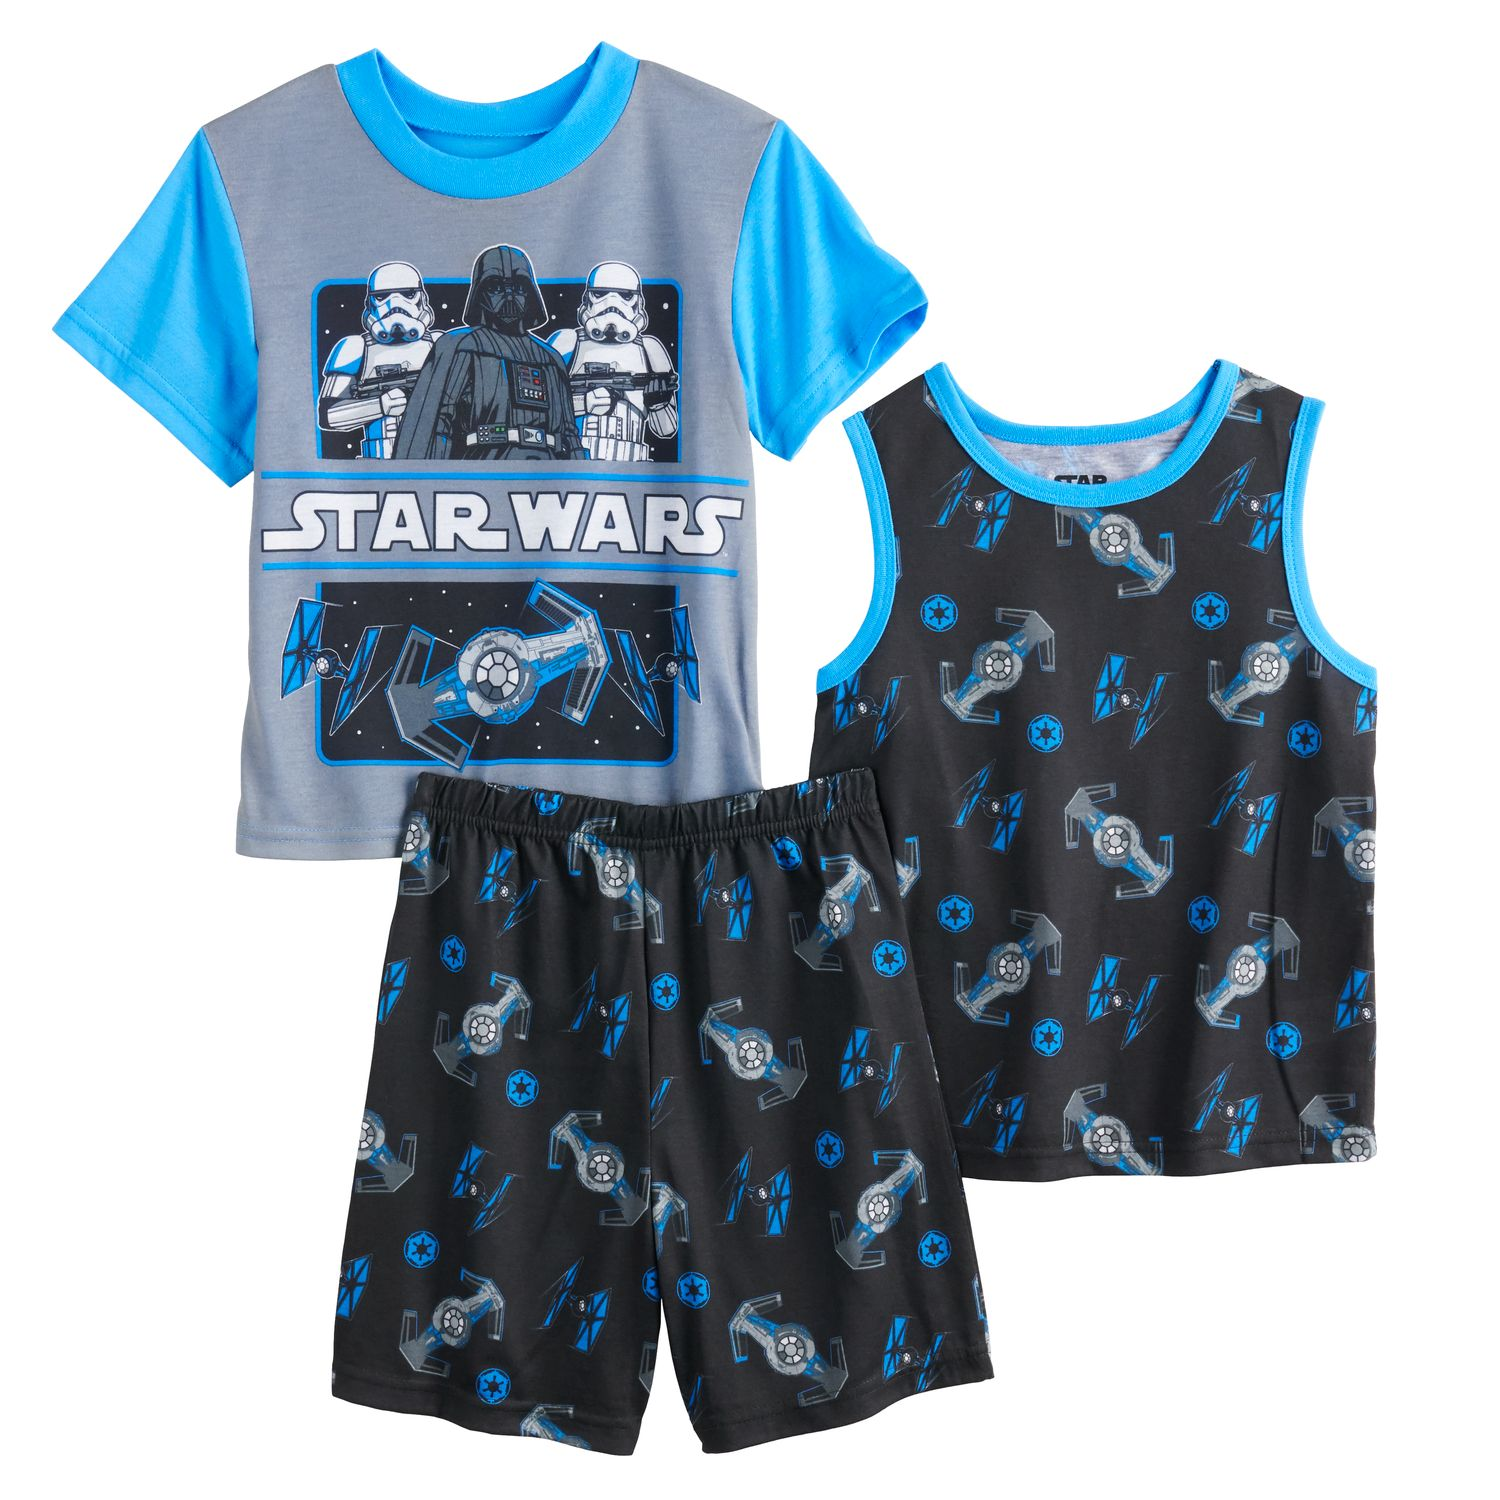 Star Wars Man Short Pajamas